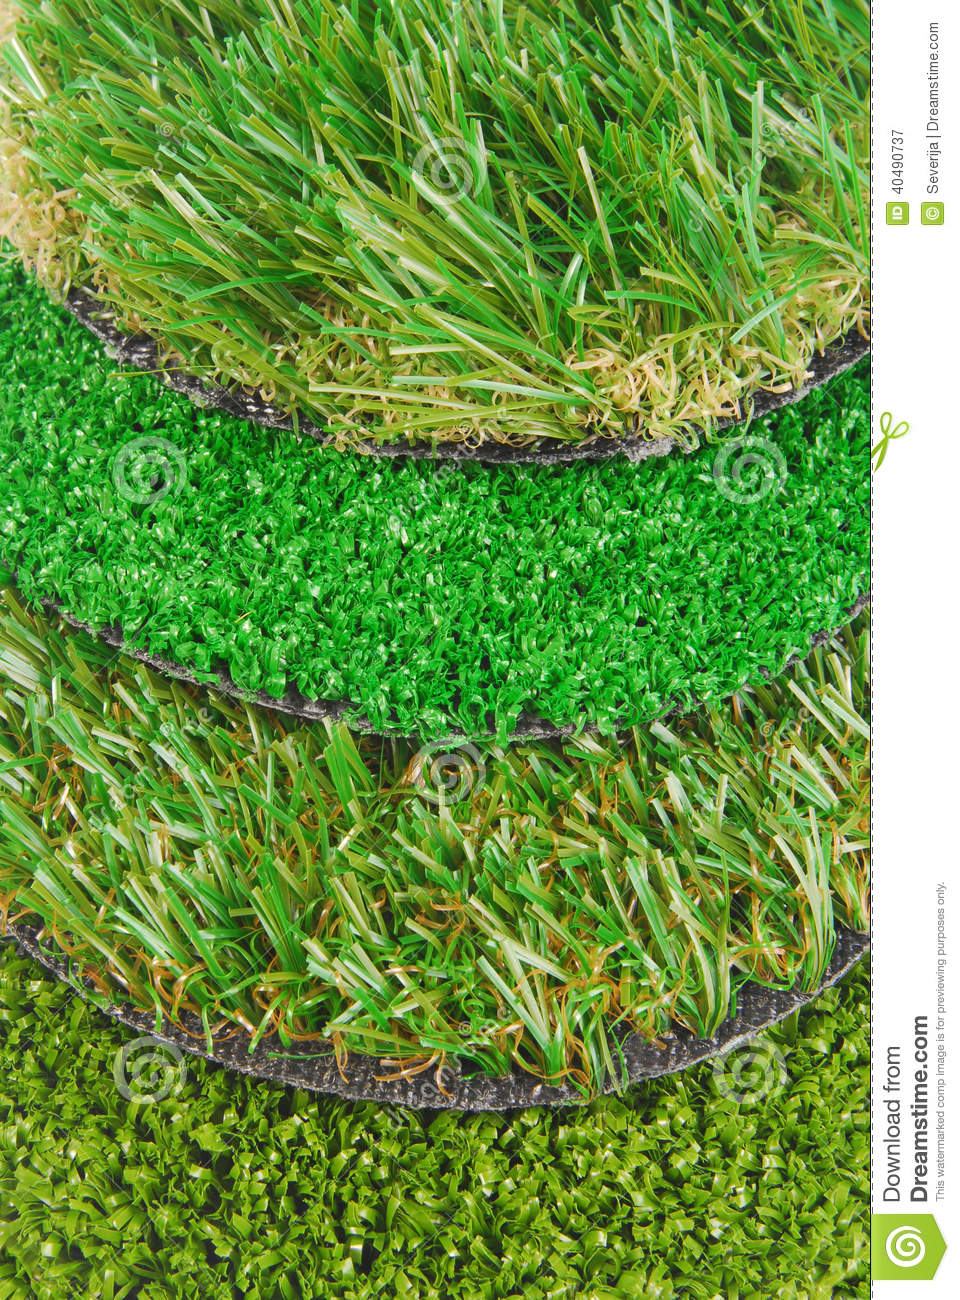 Artificial Astro Turf Grass Samples Stock Photo Image